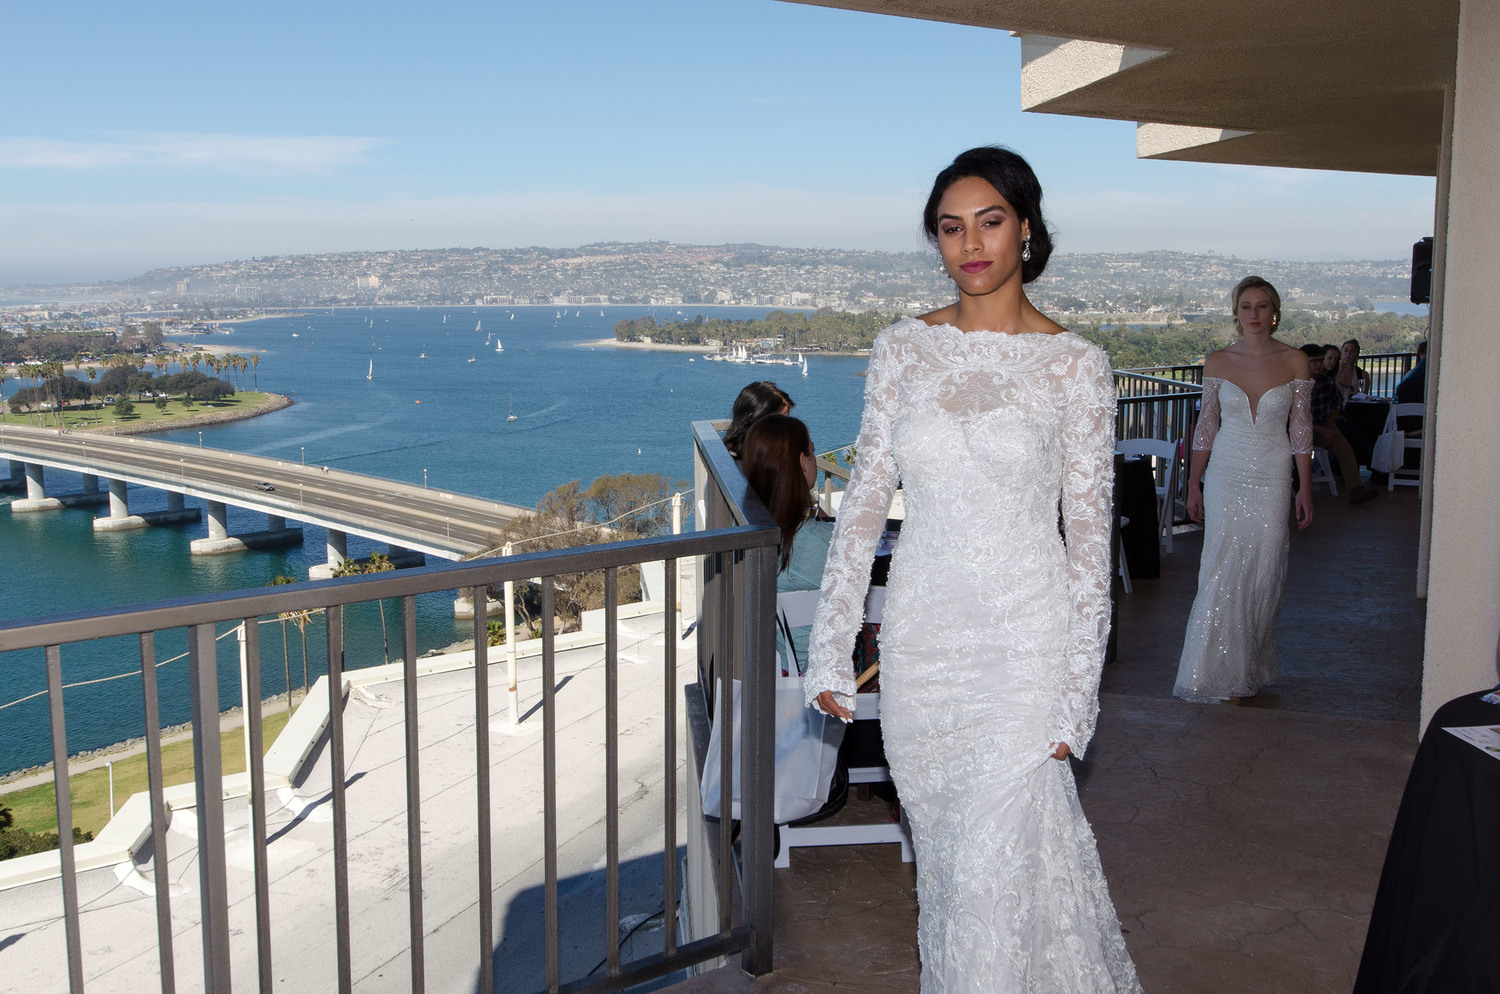 Blog — The July 29, 2018 San Diego Wedding Party EXPO @ Venues ...